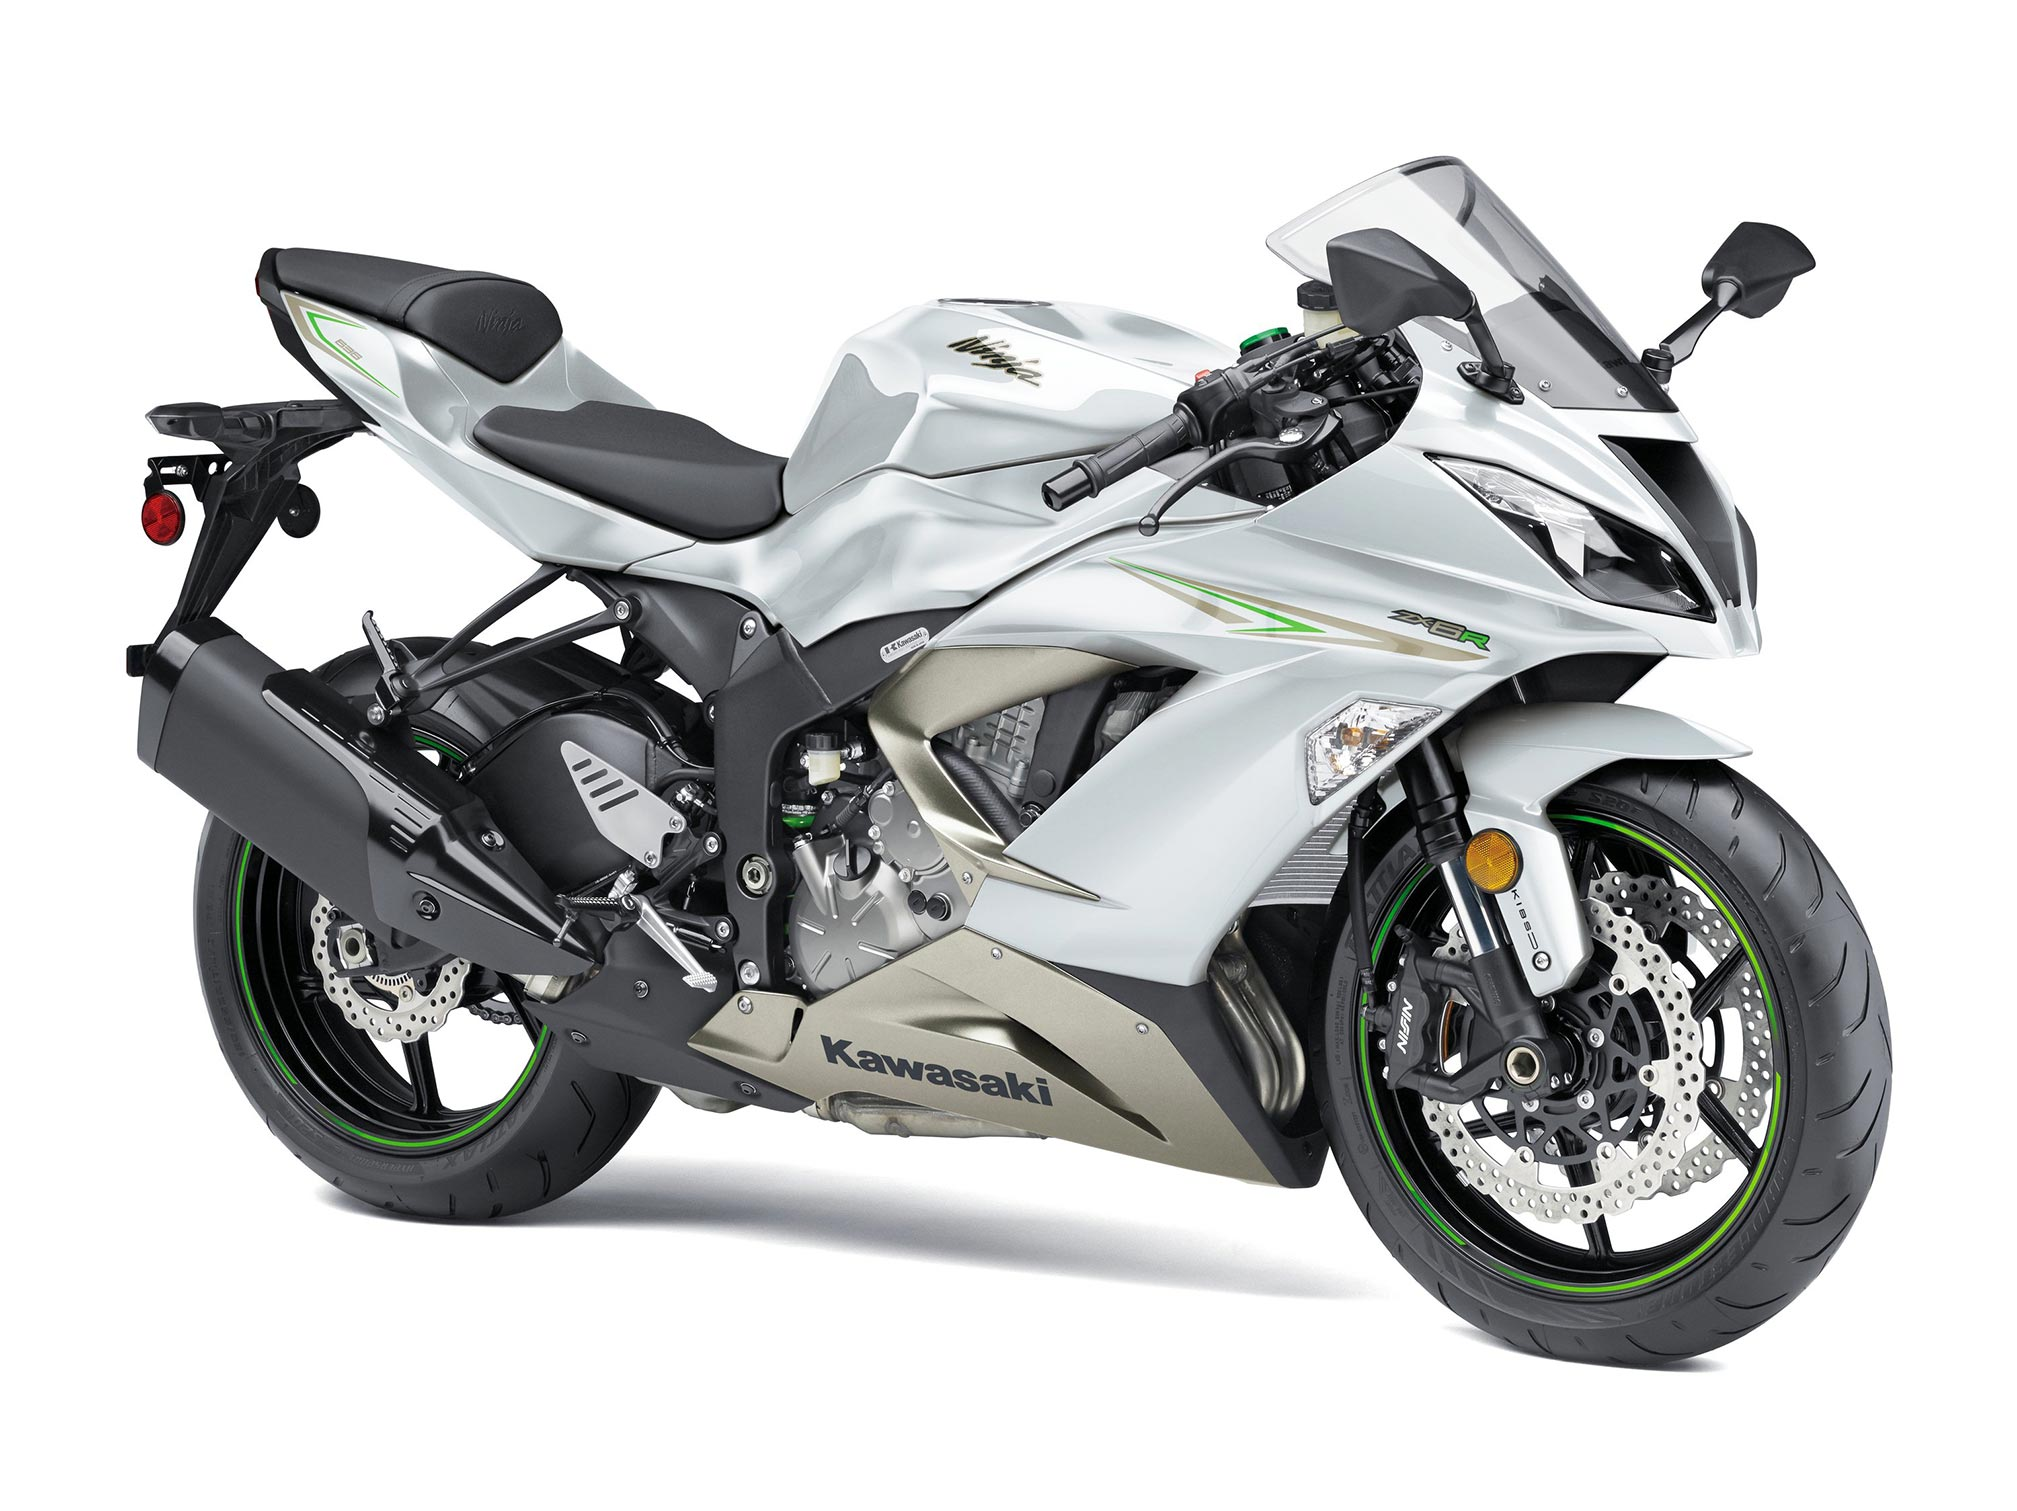 the power of a ninja zx 6r Motorcycles on autotrader has listings for new and used kawasaki ninja zx-6r motorcycles for sale near you see prices, photos and find dealers near you.